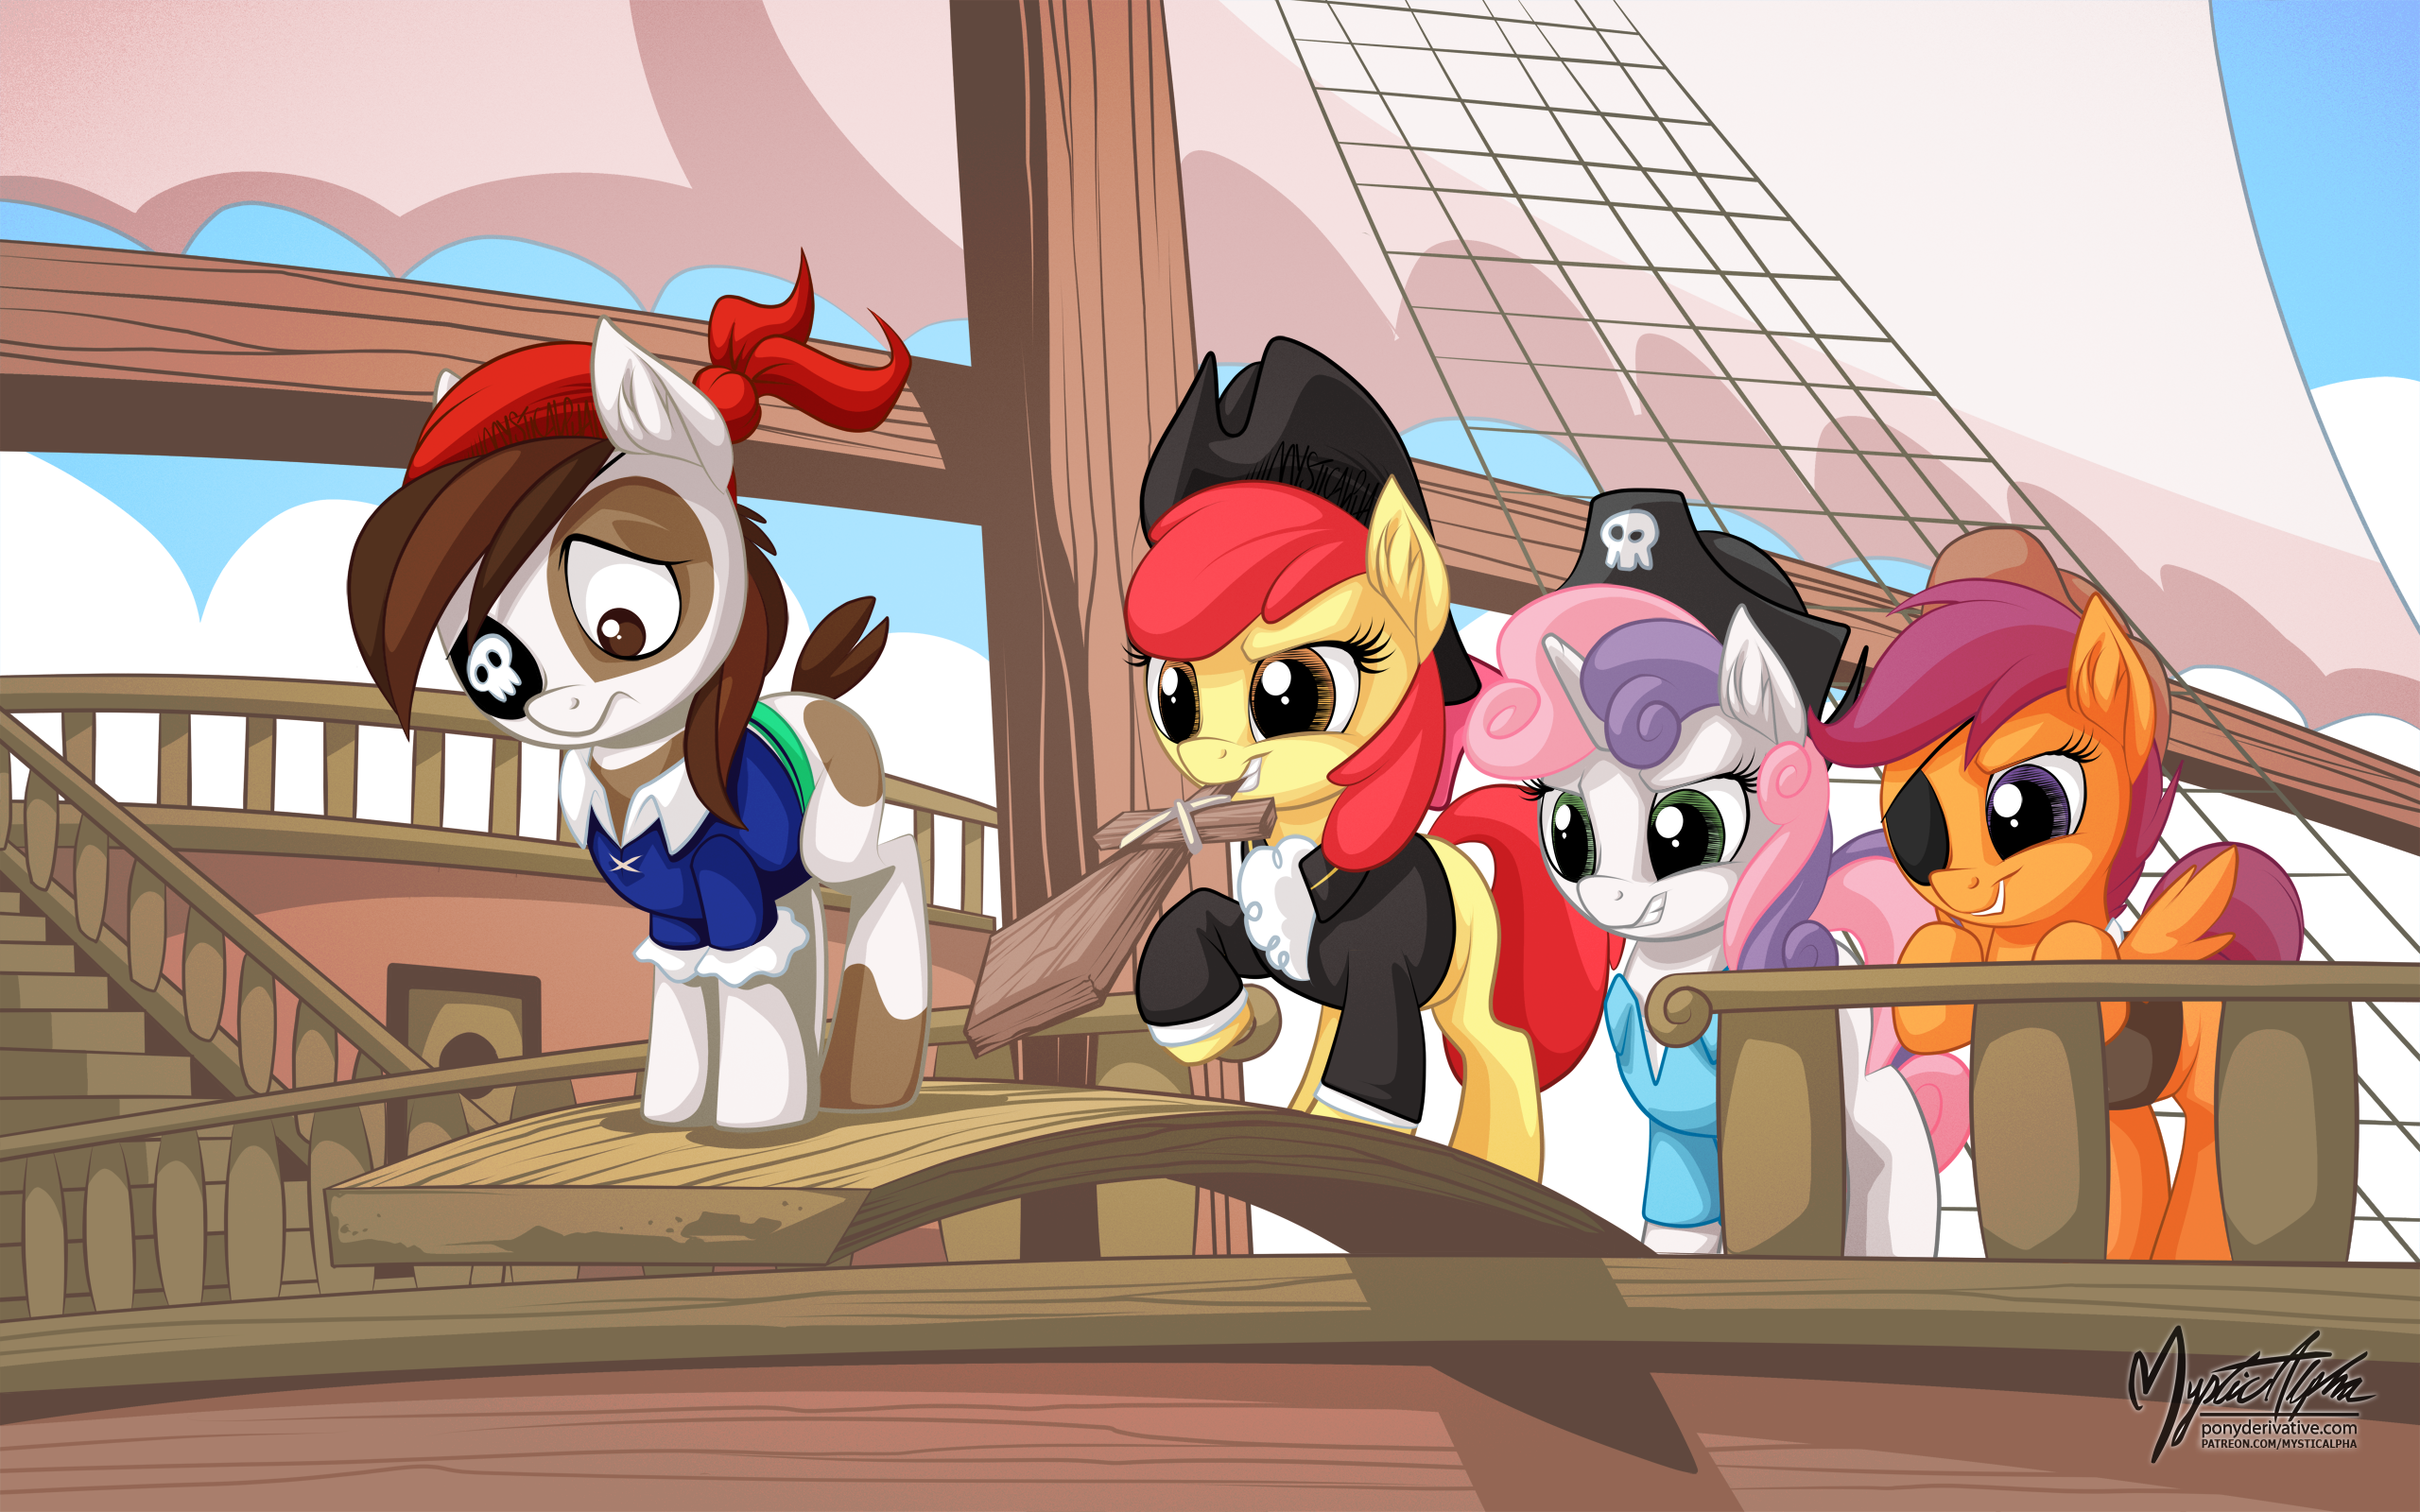 Pip Squeak and the CMC